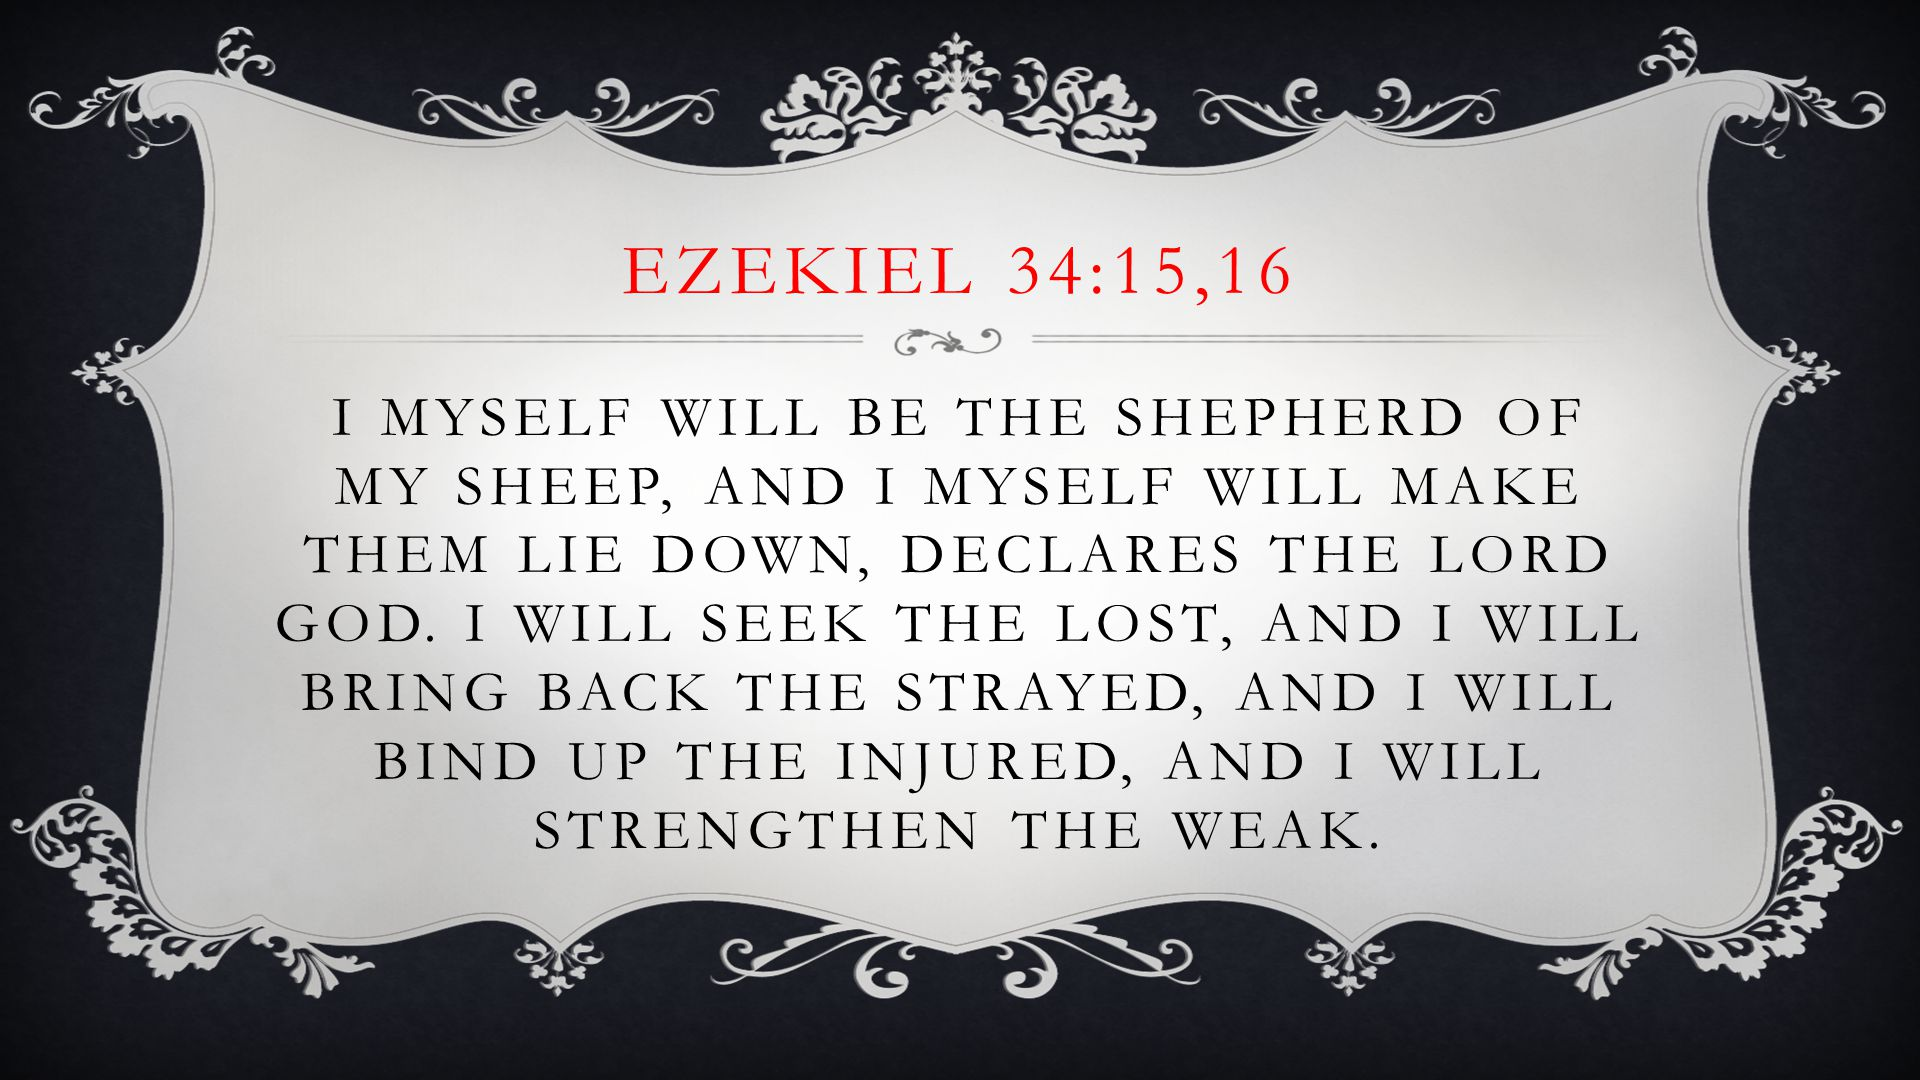 EZEKIEL 34:15,16 I MYSELF WILL BE THE SHEPHERD OF MY SHEEP, AND I MYSELF WILL MAKE THEM LIE DOWN, DECLARES THE LORD GOD.